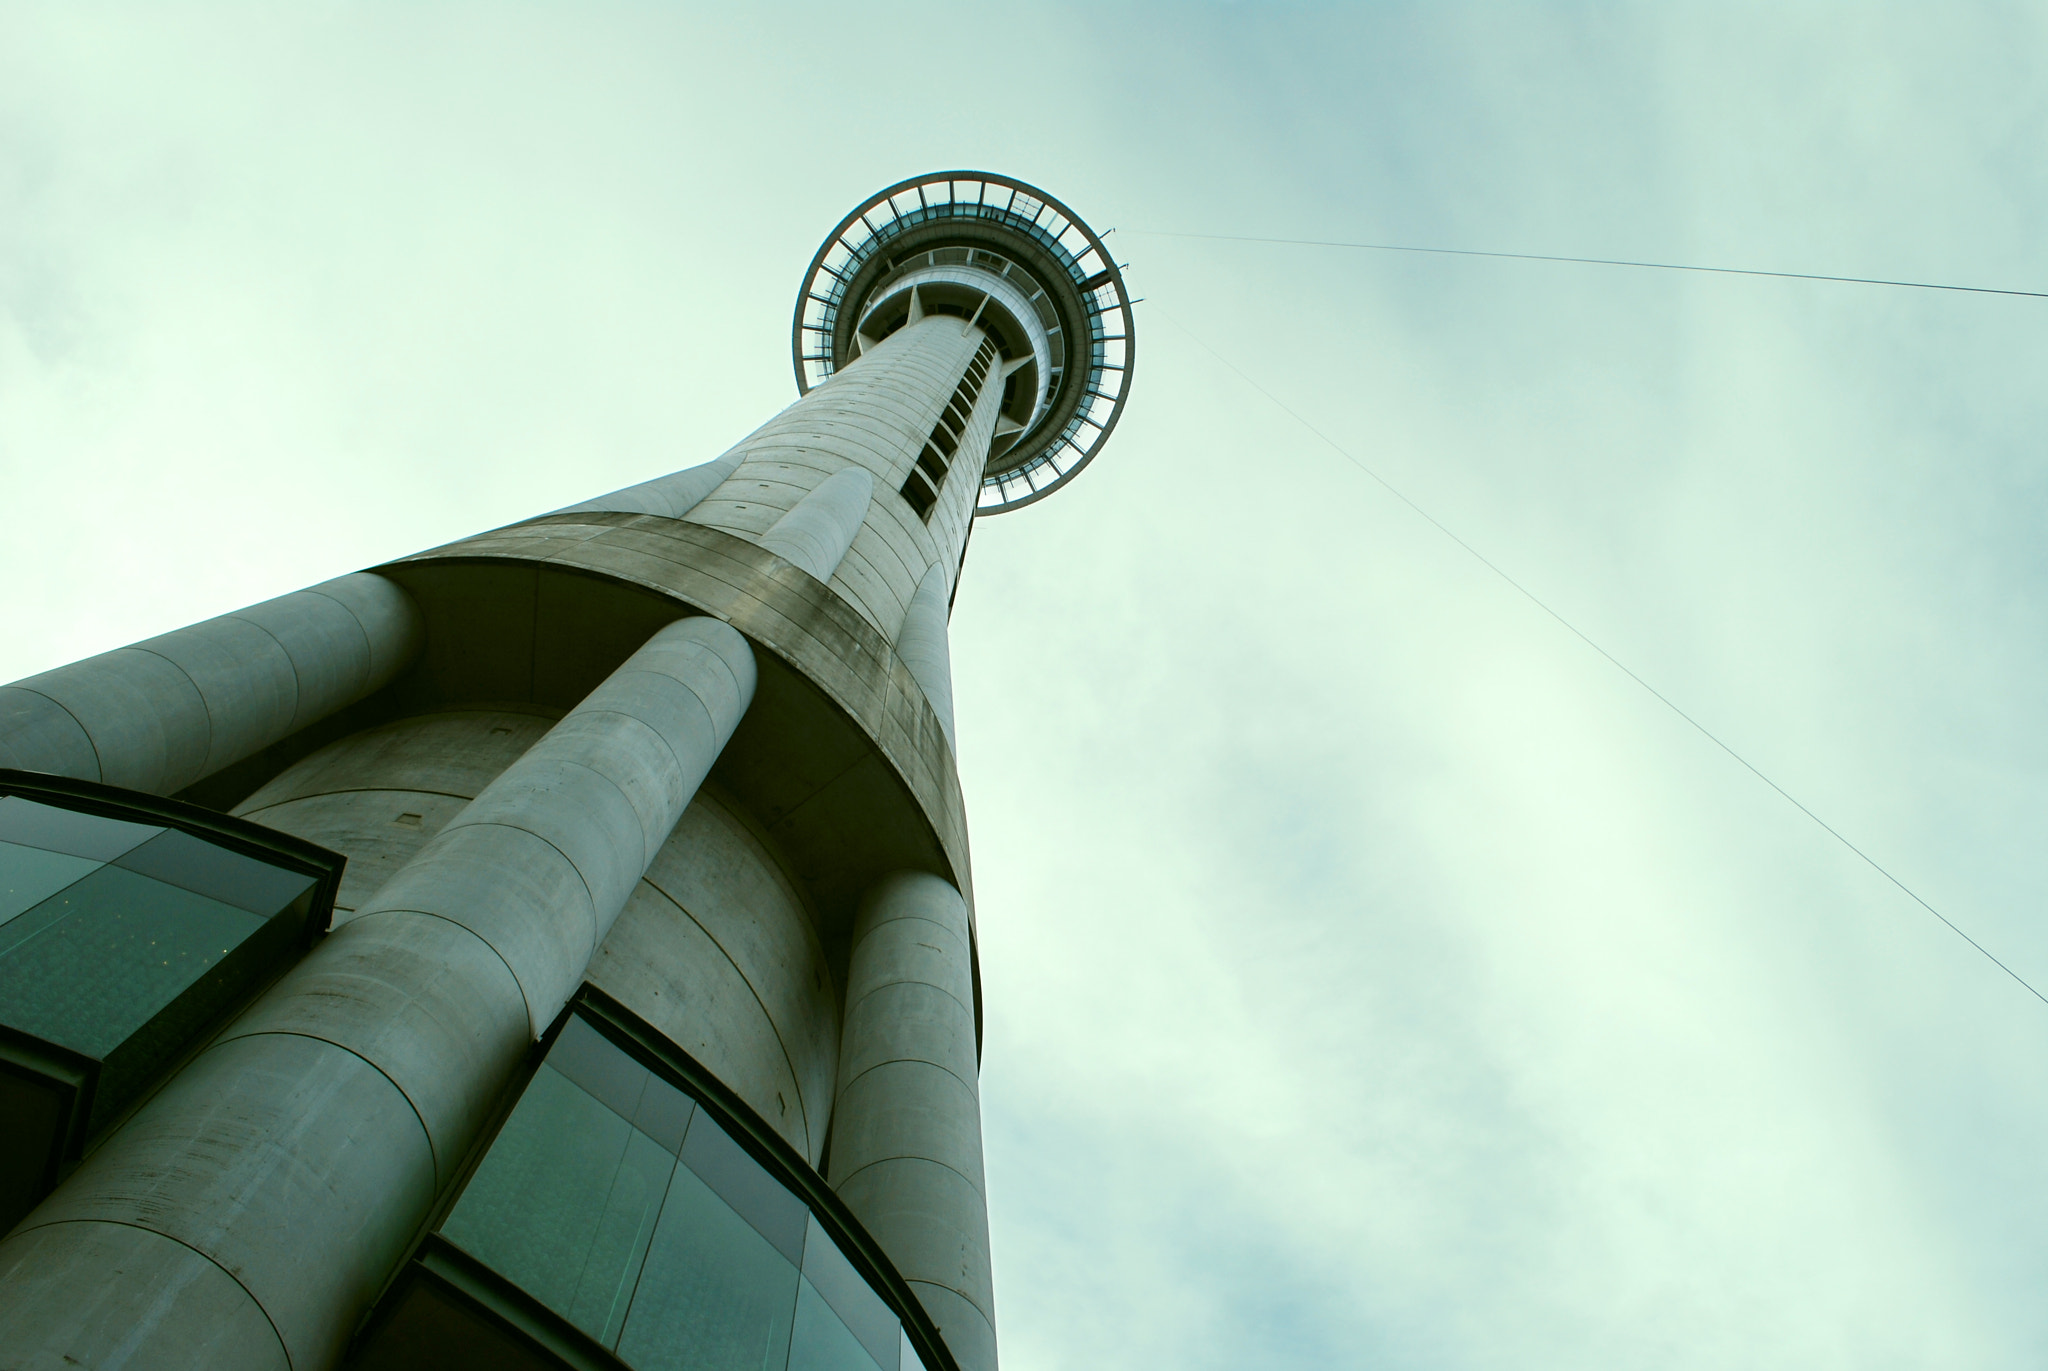 Photograph Sky Tower by Masood Khan on 500px